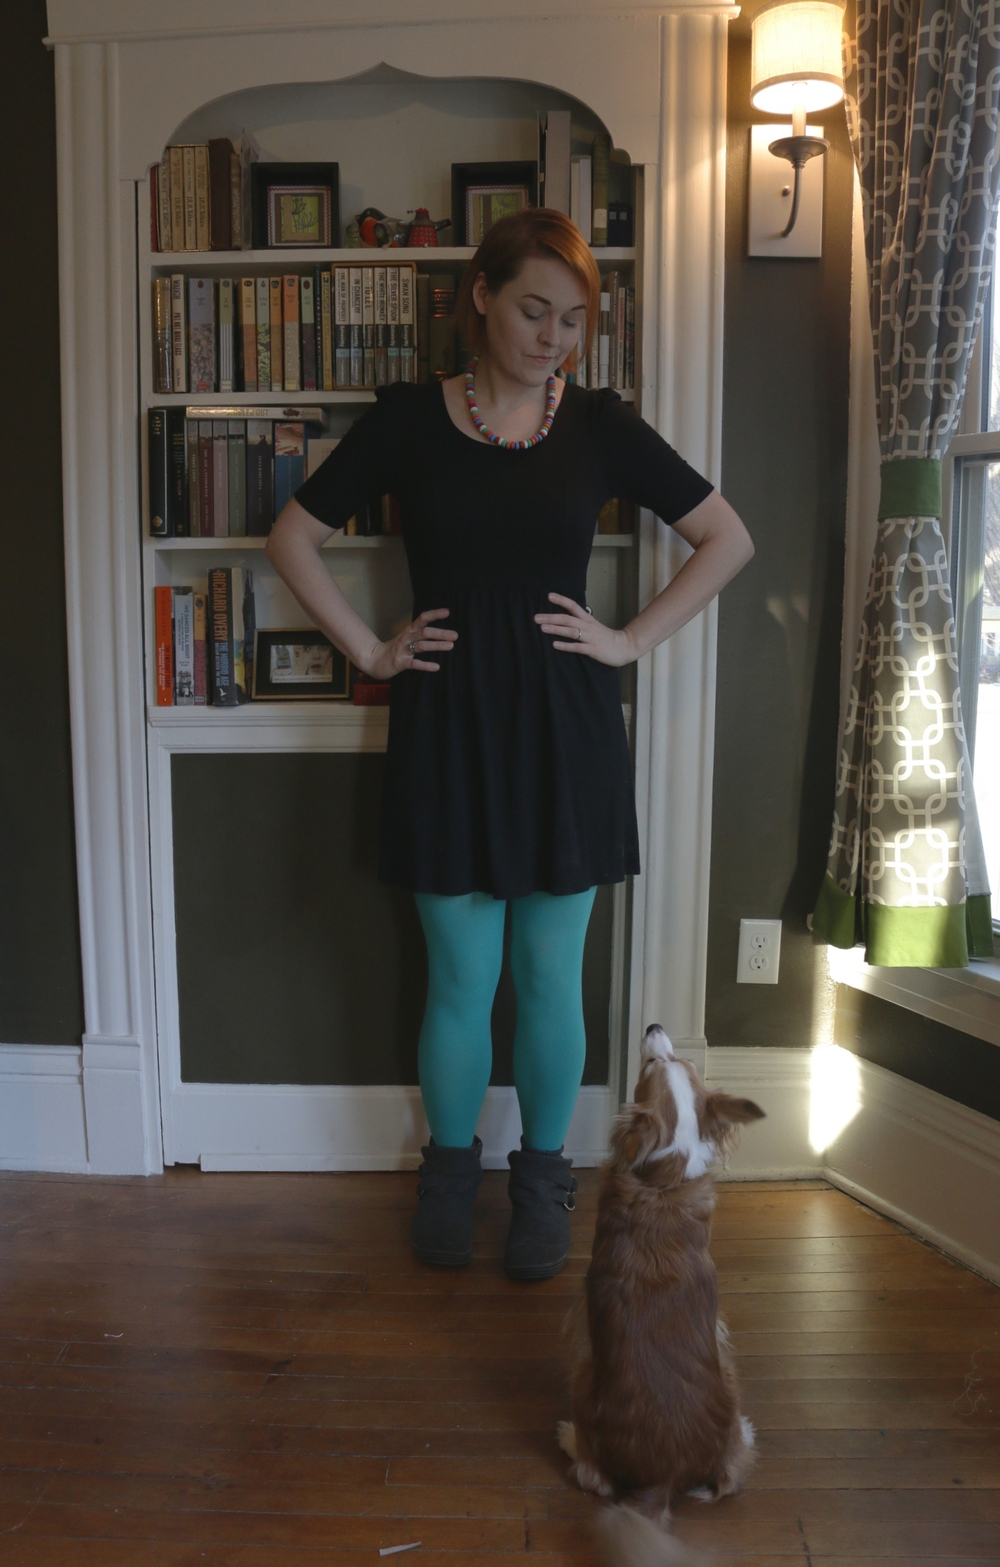 """Yes, Buster, it is the first day of Dressember."" My first look for Dressember 2014: Little Black Dress, Robin Egg-colored Tights, Crayon Necklace (yes! a necklace made of crayons to look like a candy necklace), and my comfy slip on boots."